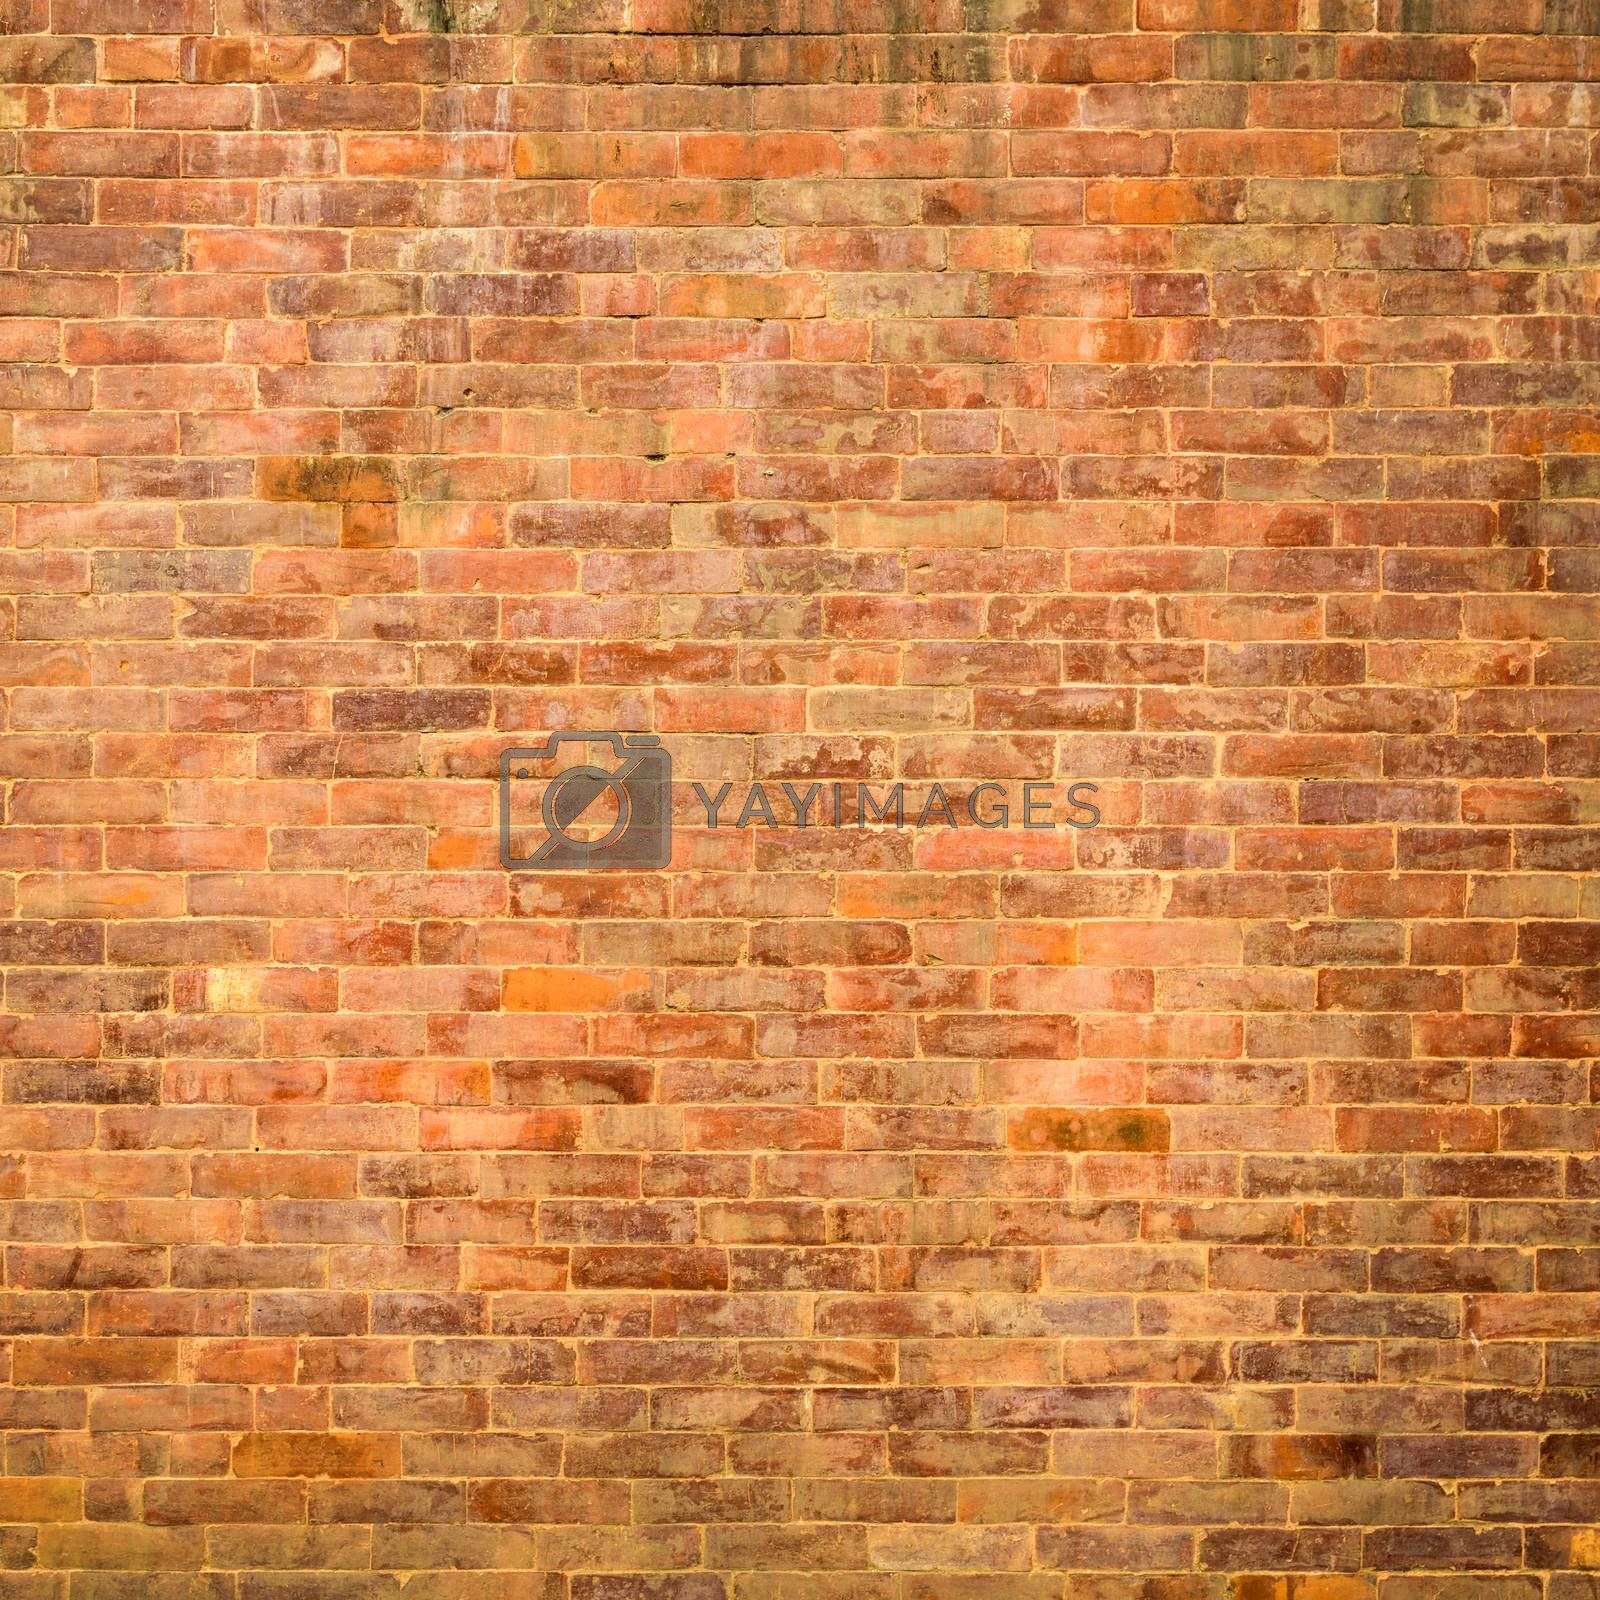 Royalty free image of Brick wall texture by dutourdumonde